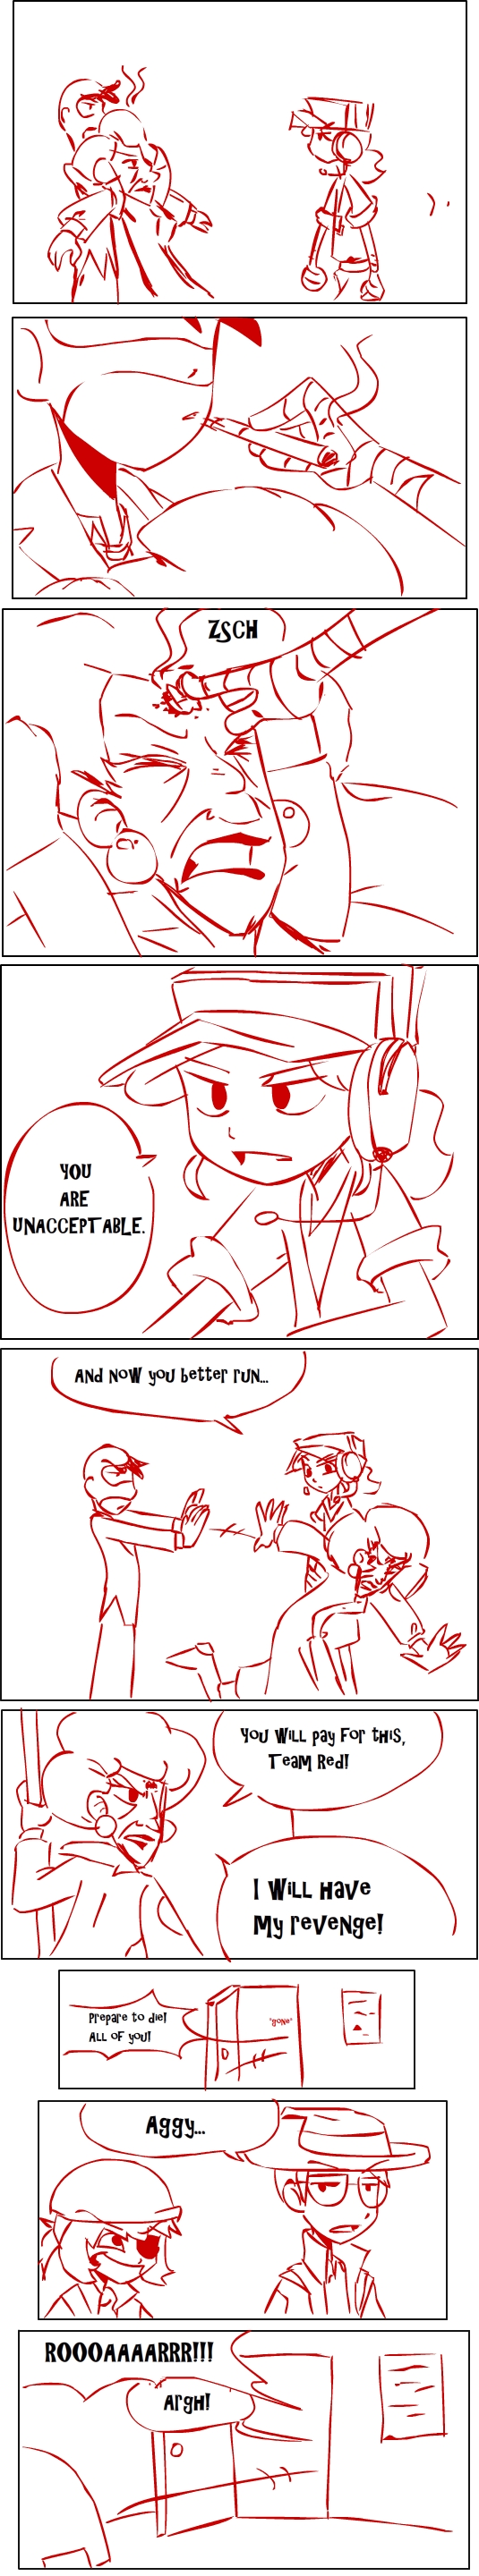 TF2 comic: TEAM RED page 45 by s0s2